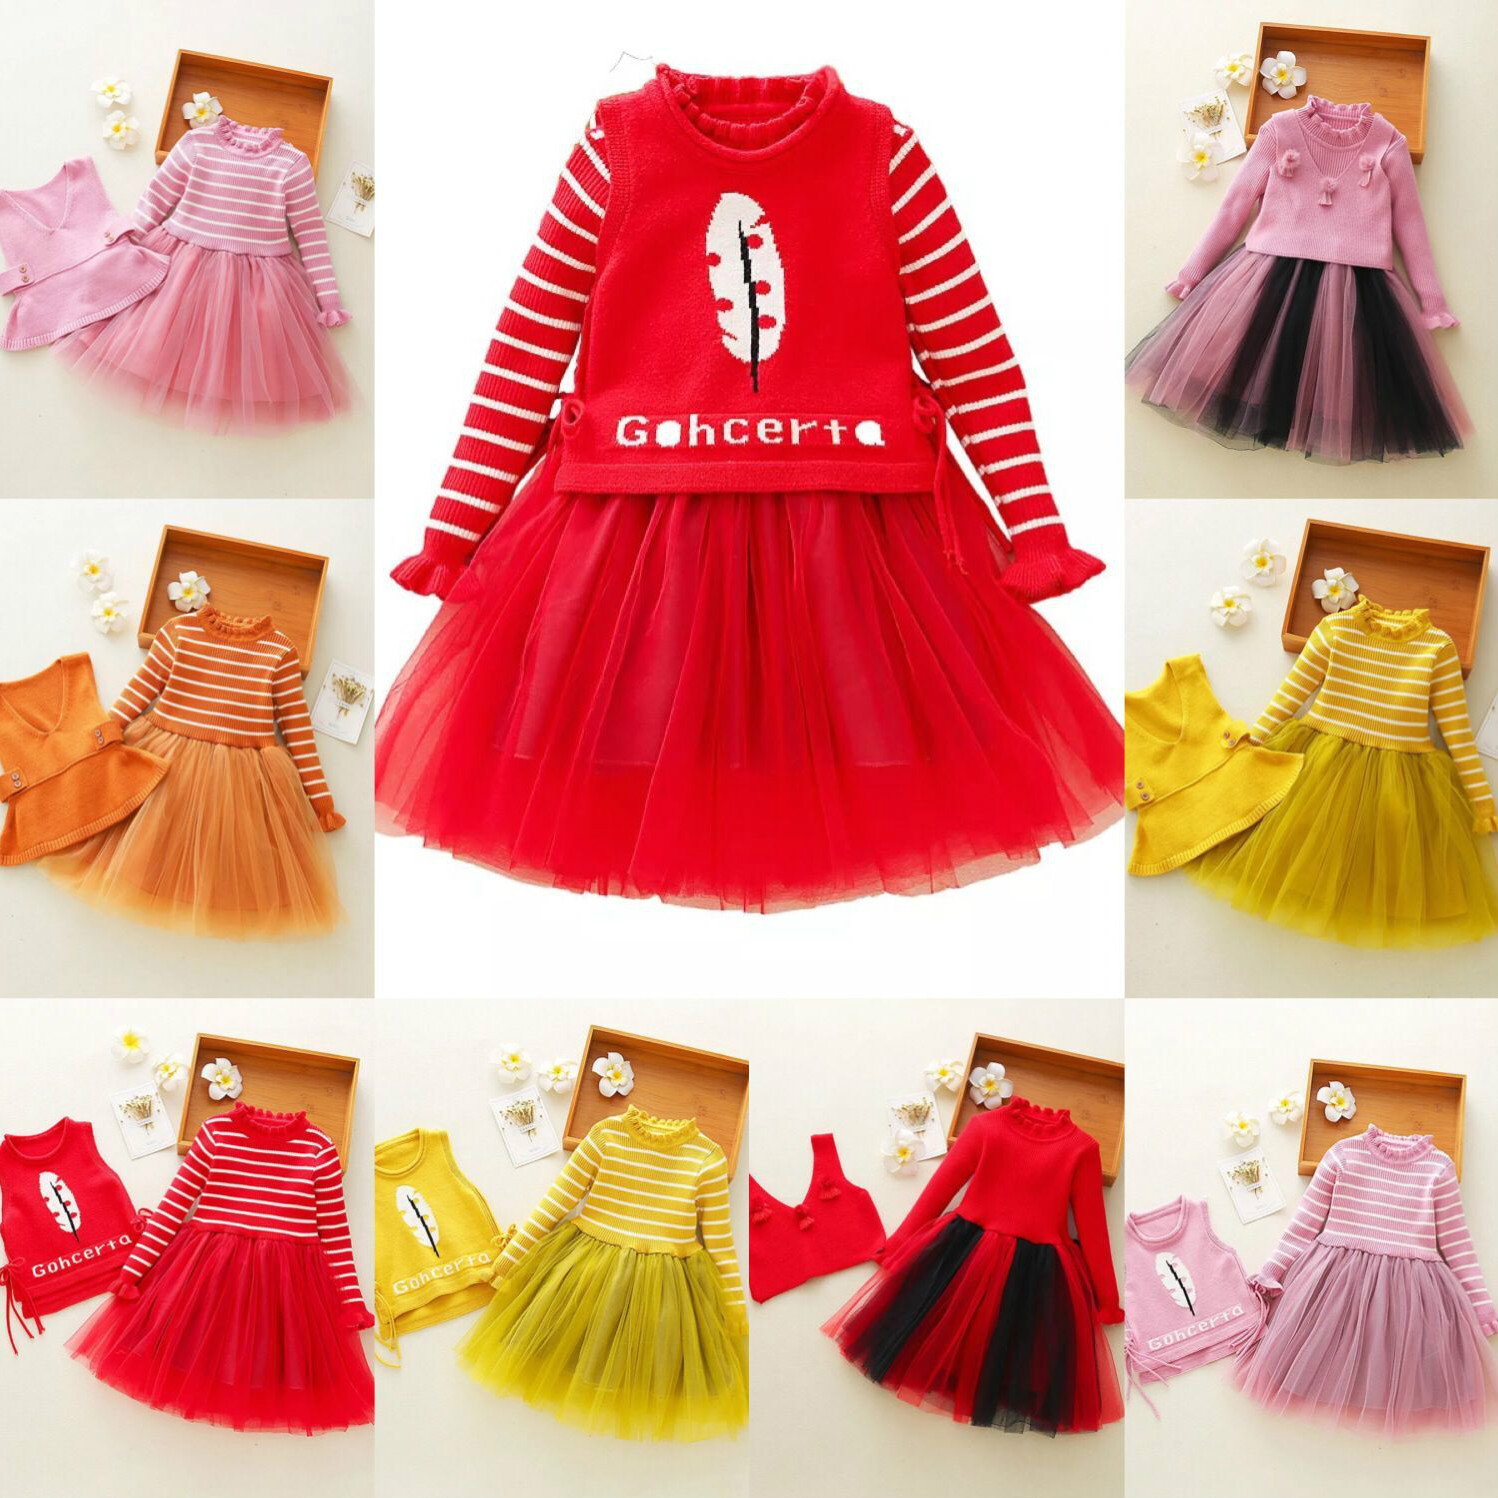 New Children Autumn Winter Dress Baby Girls Striped Long Sleeve Dresses Knitted Vest+tutu Dress 2pcs Clothes for 3-11Yrs CA3771 2018 spring summer new fashion women dress round neck striped stretch knitted dresses slim with packet haute couture